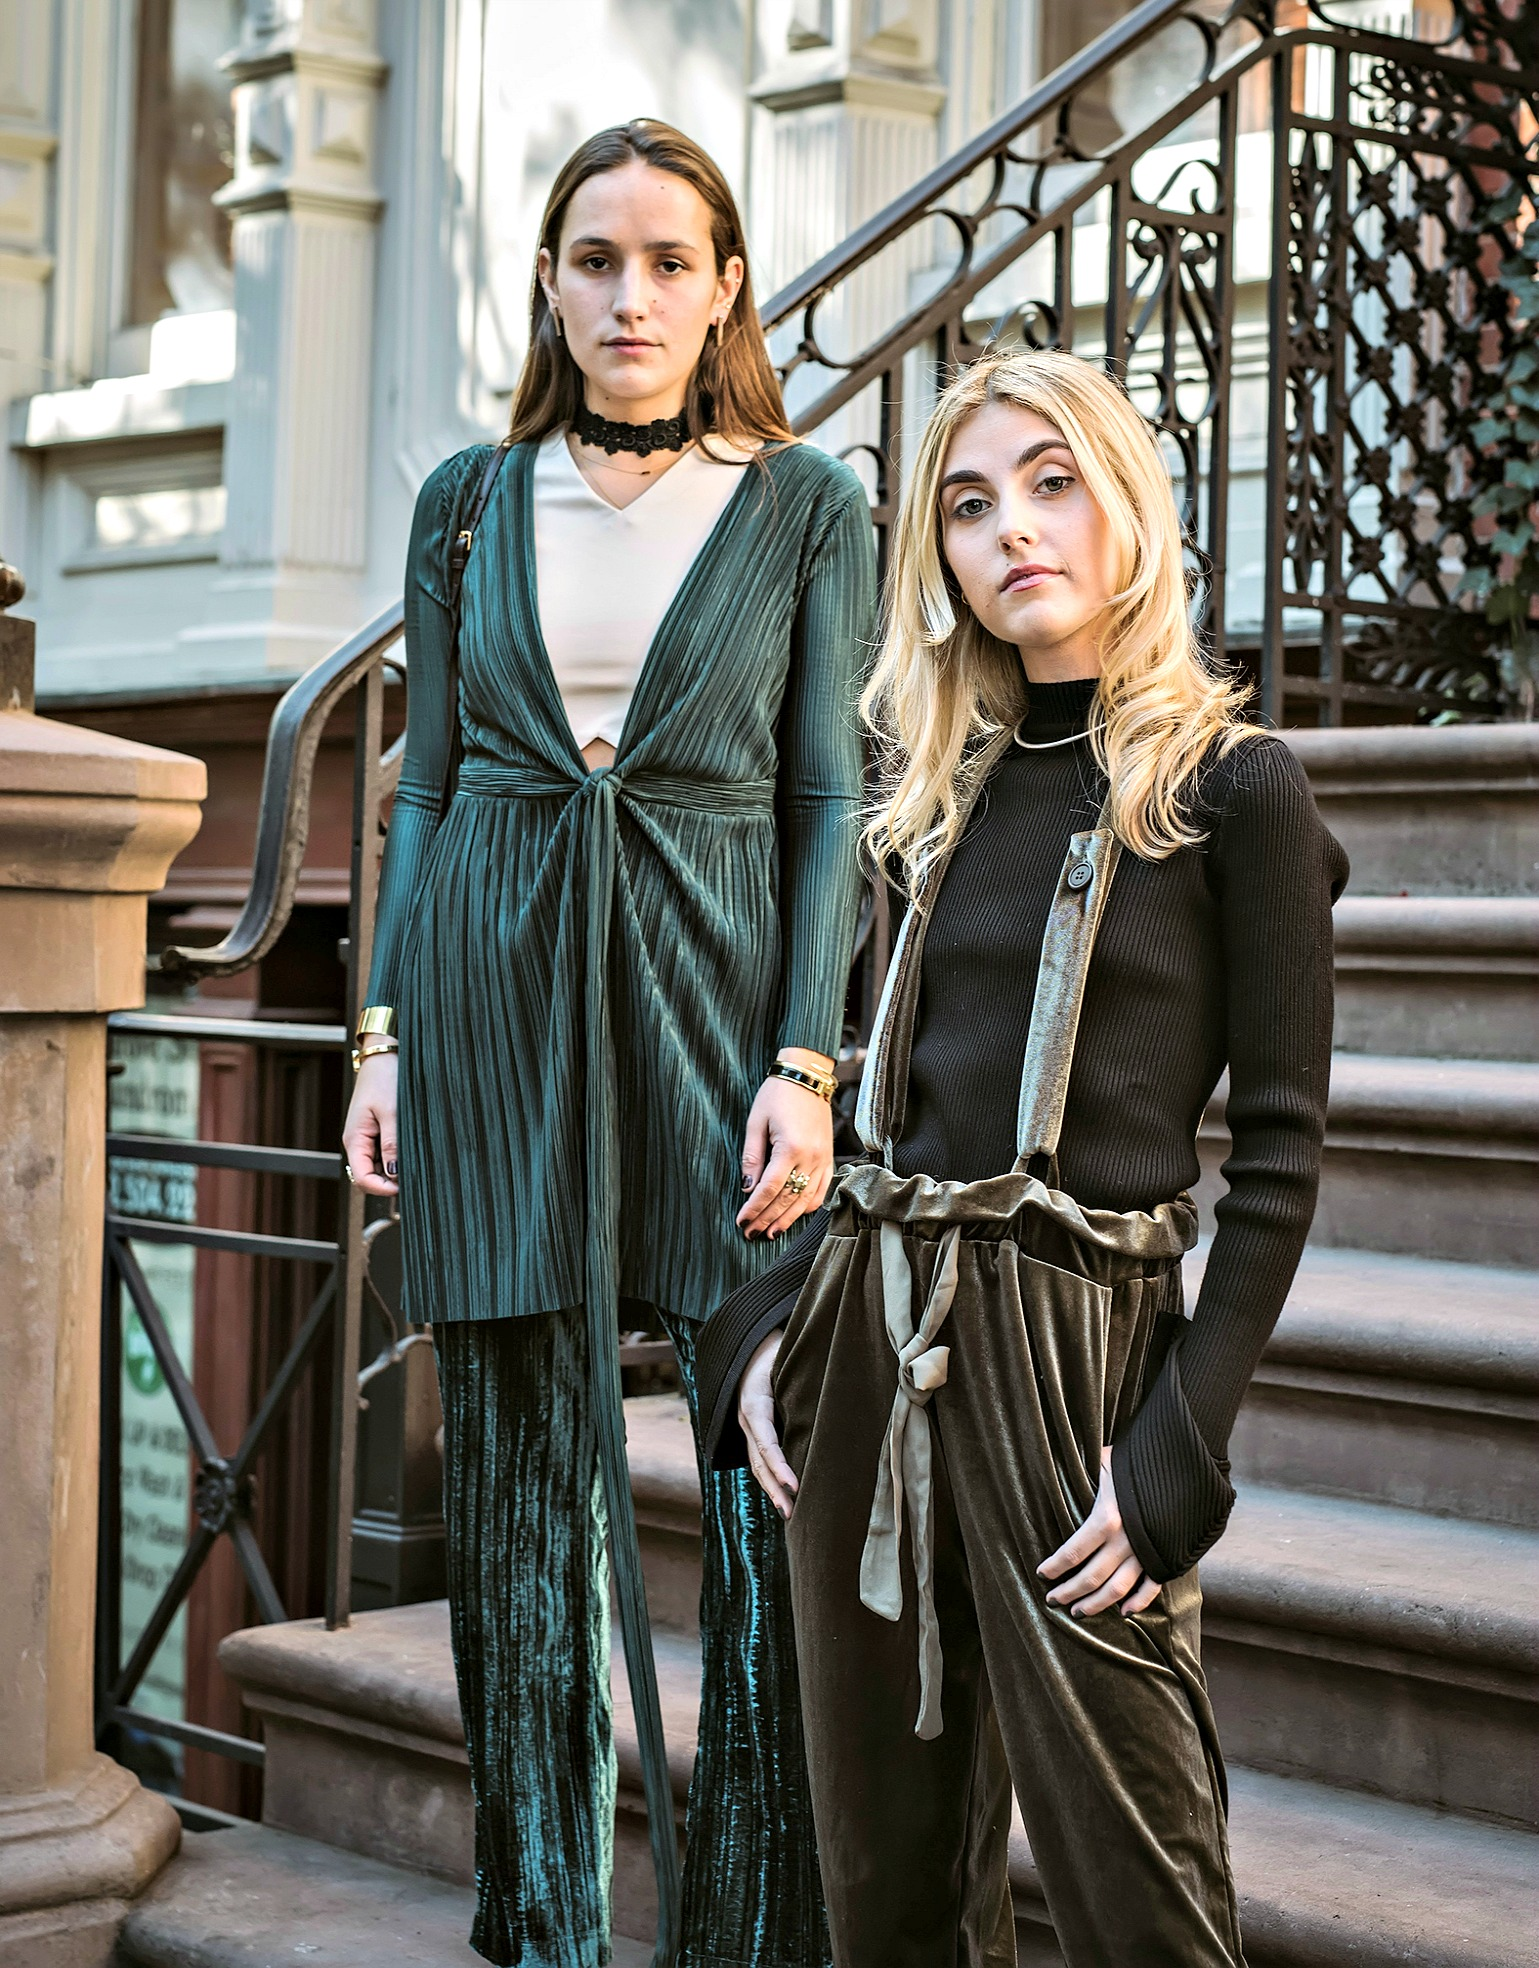 SOPHIE AND CHARLOTTE BICKLEY YIN 2MY YANG SISTER FASHION BLOGGERS VELVET LOOK